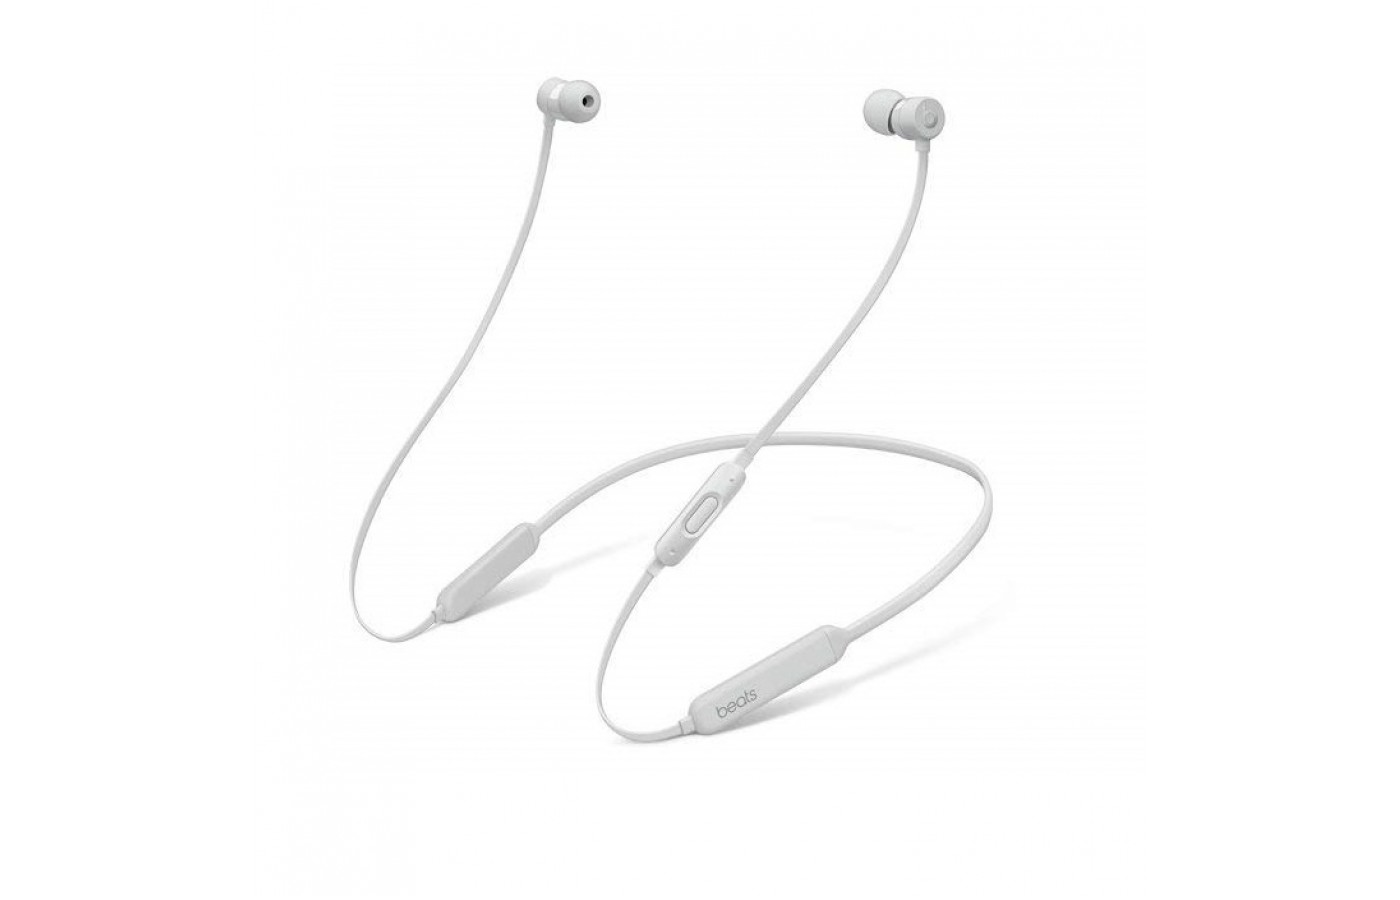 The Beats X offers an Apple W1 Chip for seamless setup to iOS devices.